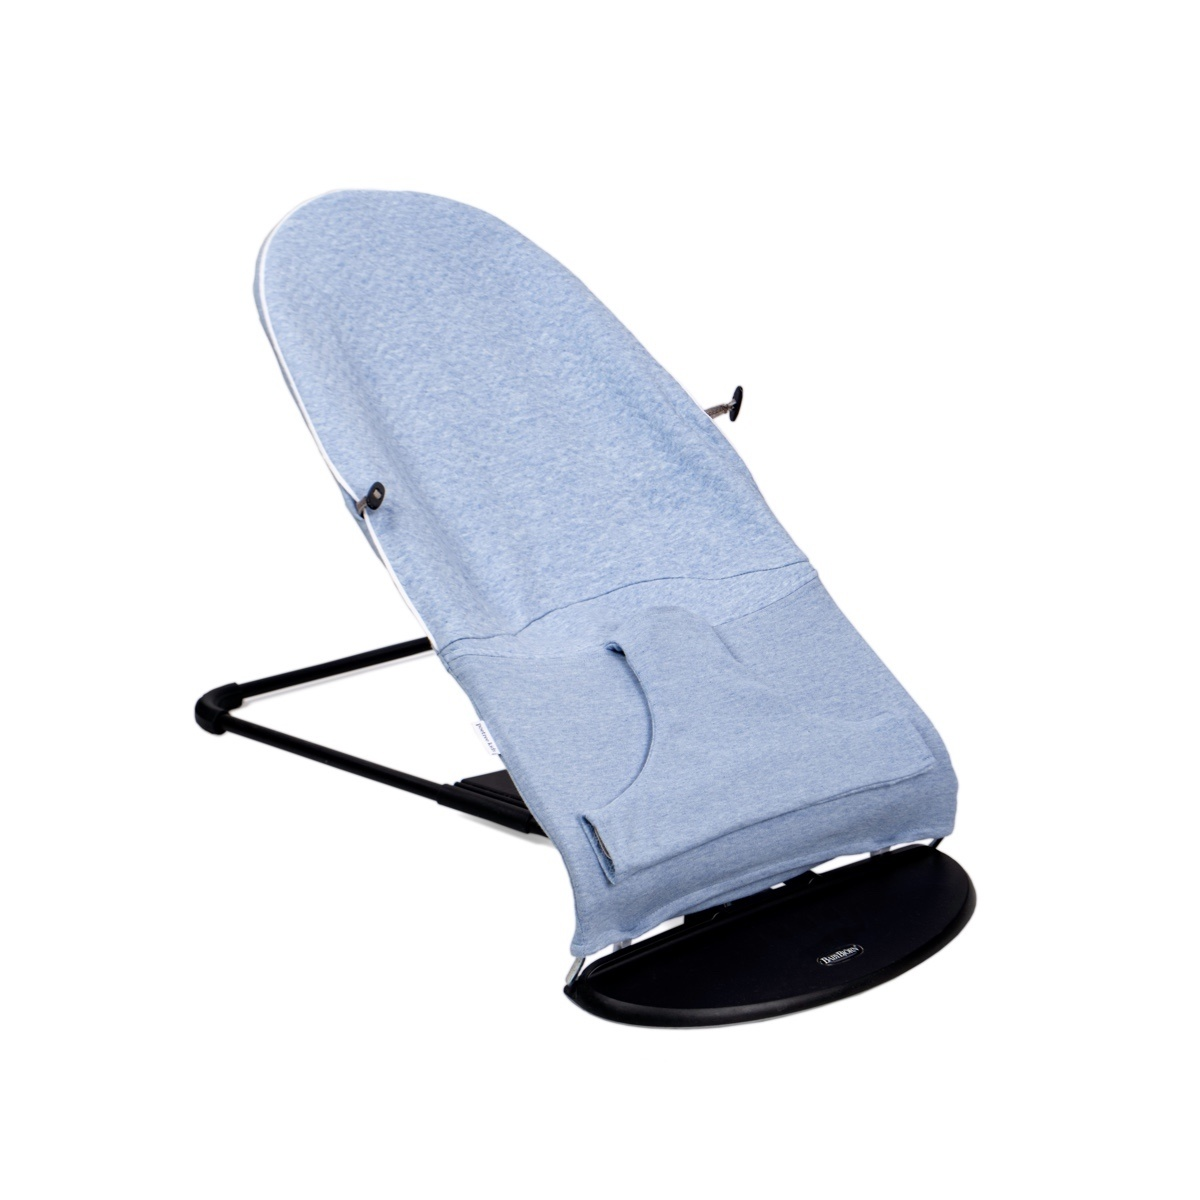 Protective cover for the Babybjörn bouncer Chevron Denim Blue-3